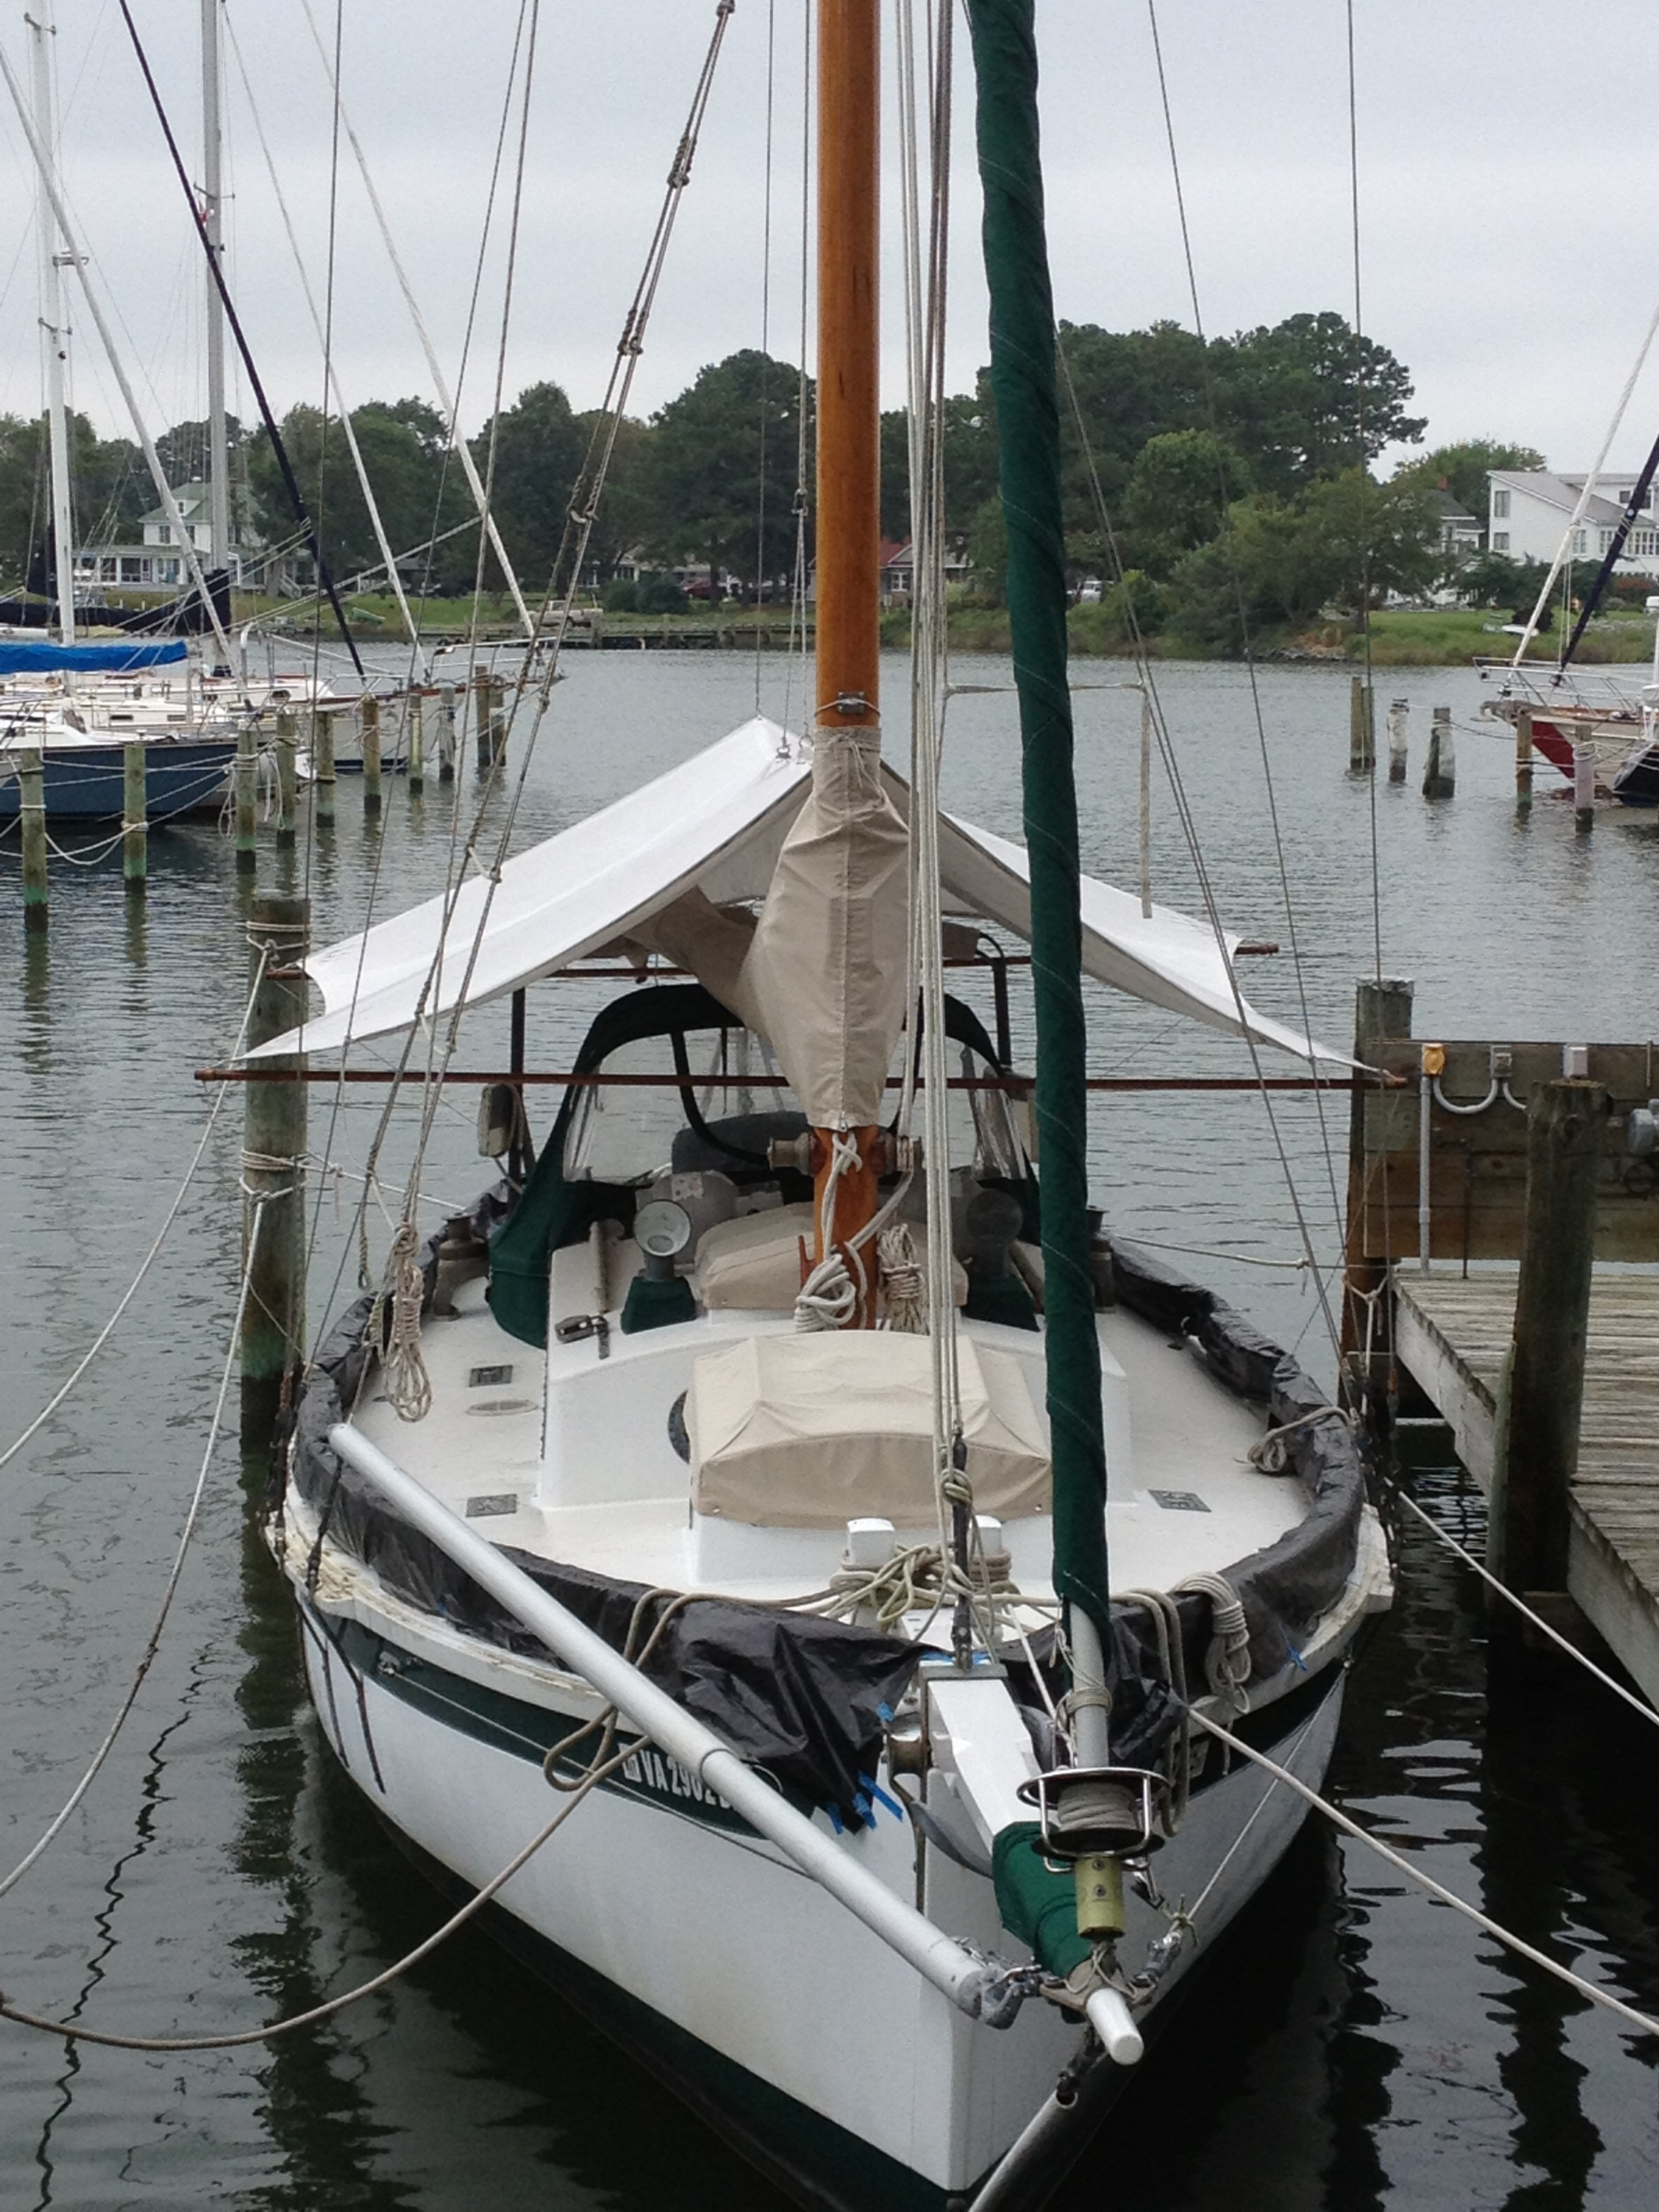 Obviously, this is the BEST sailboat! (It's ours.)